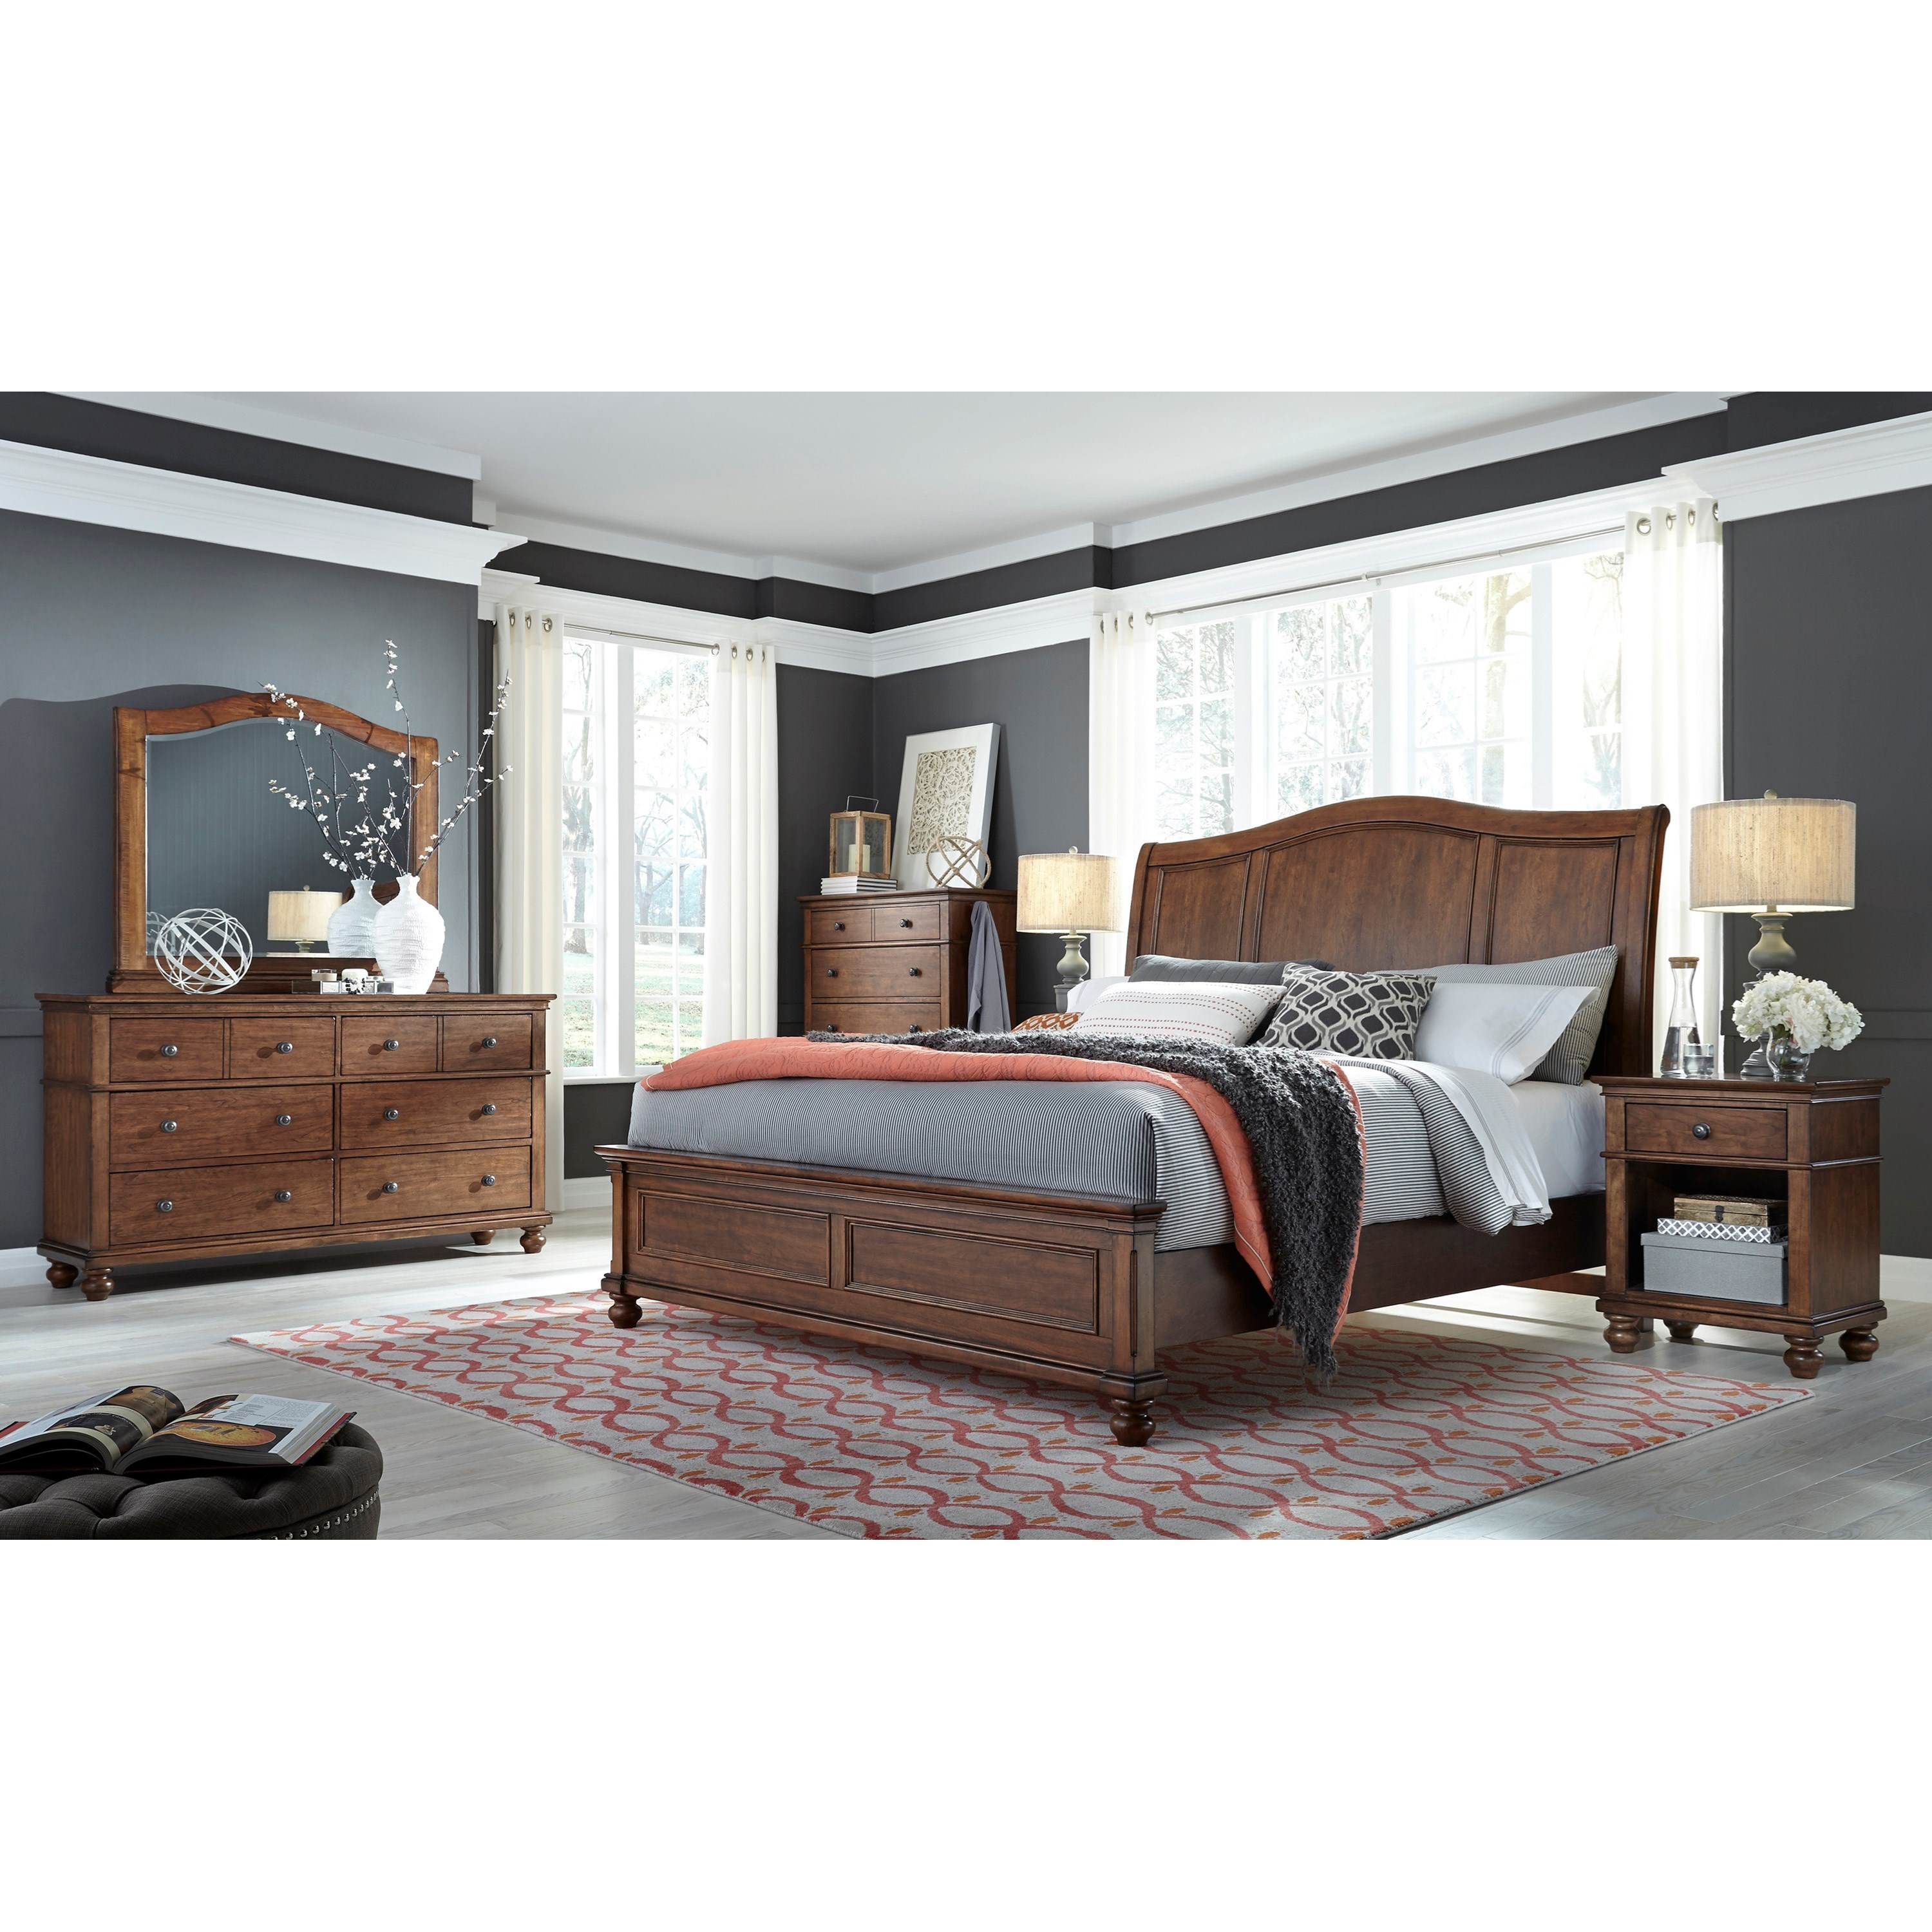 Aspenhome oxford california king bedroom group dunk for Bedroom furniture groups